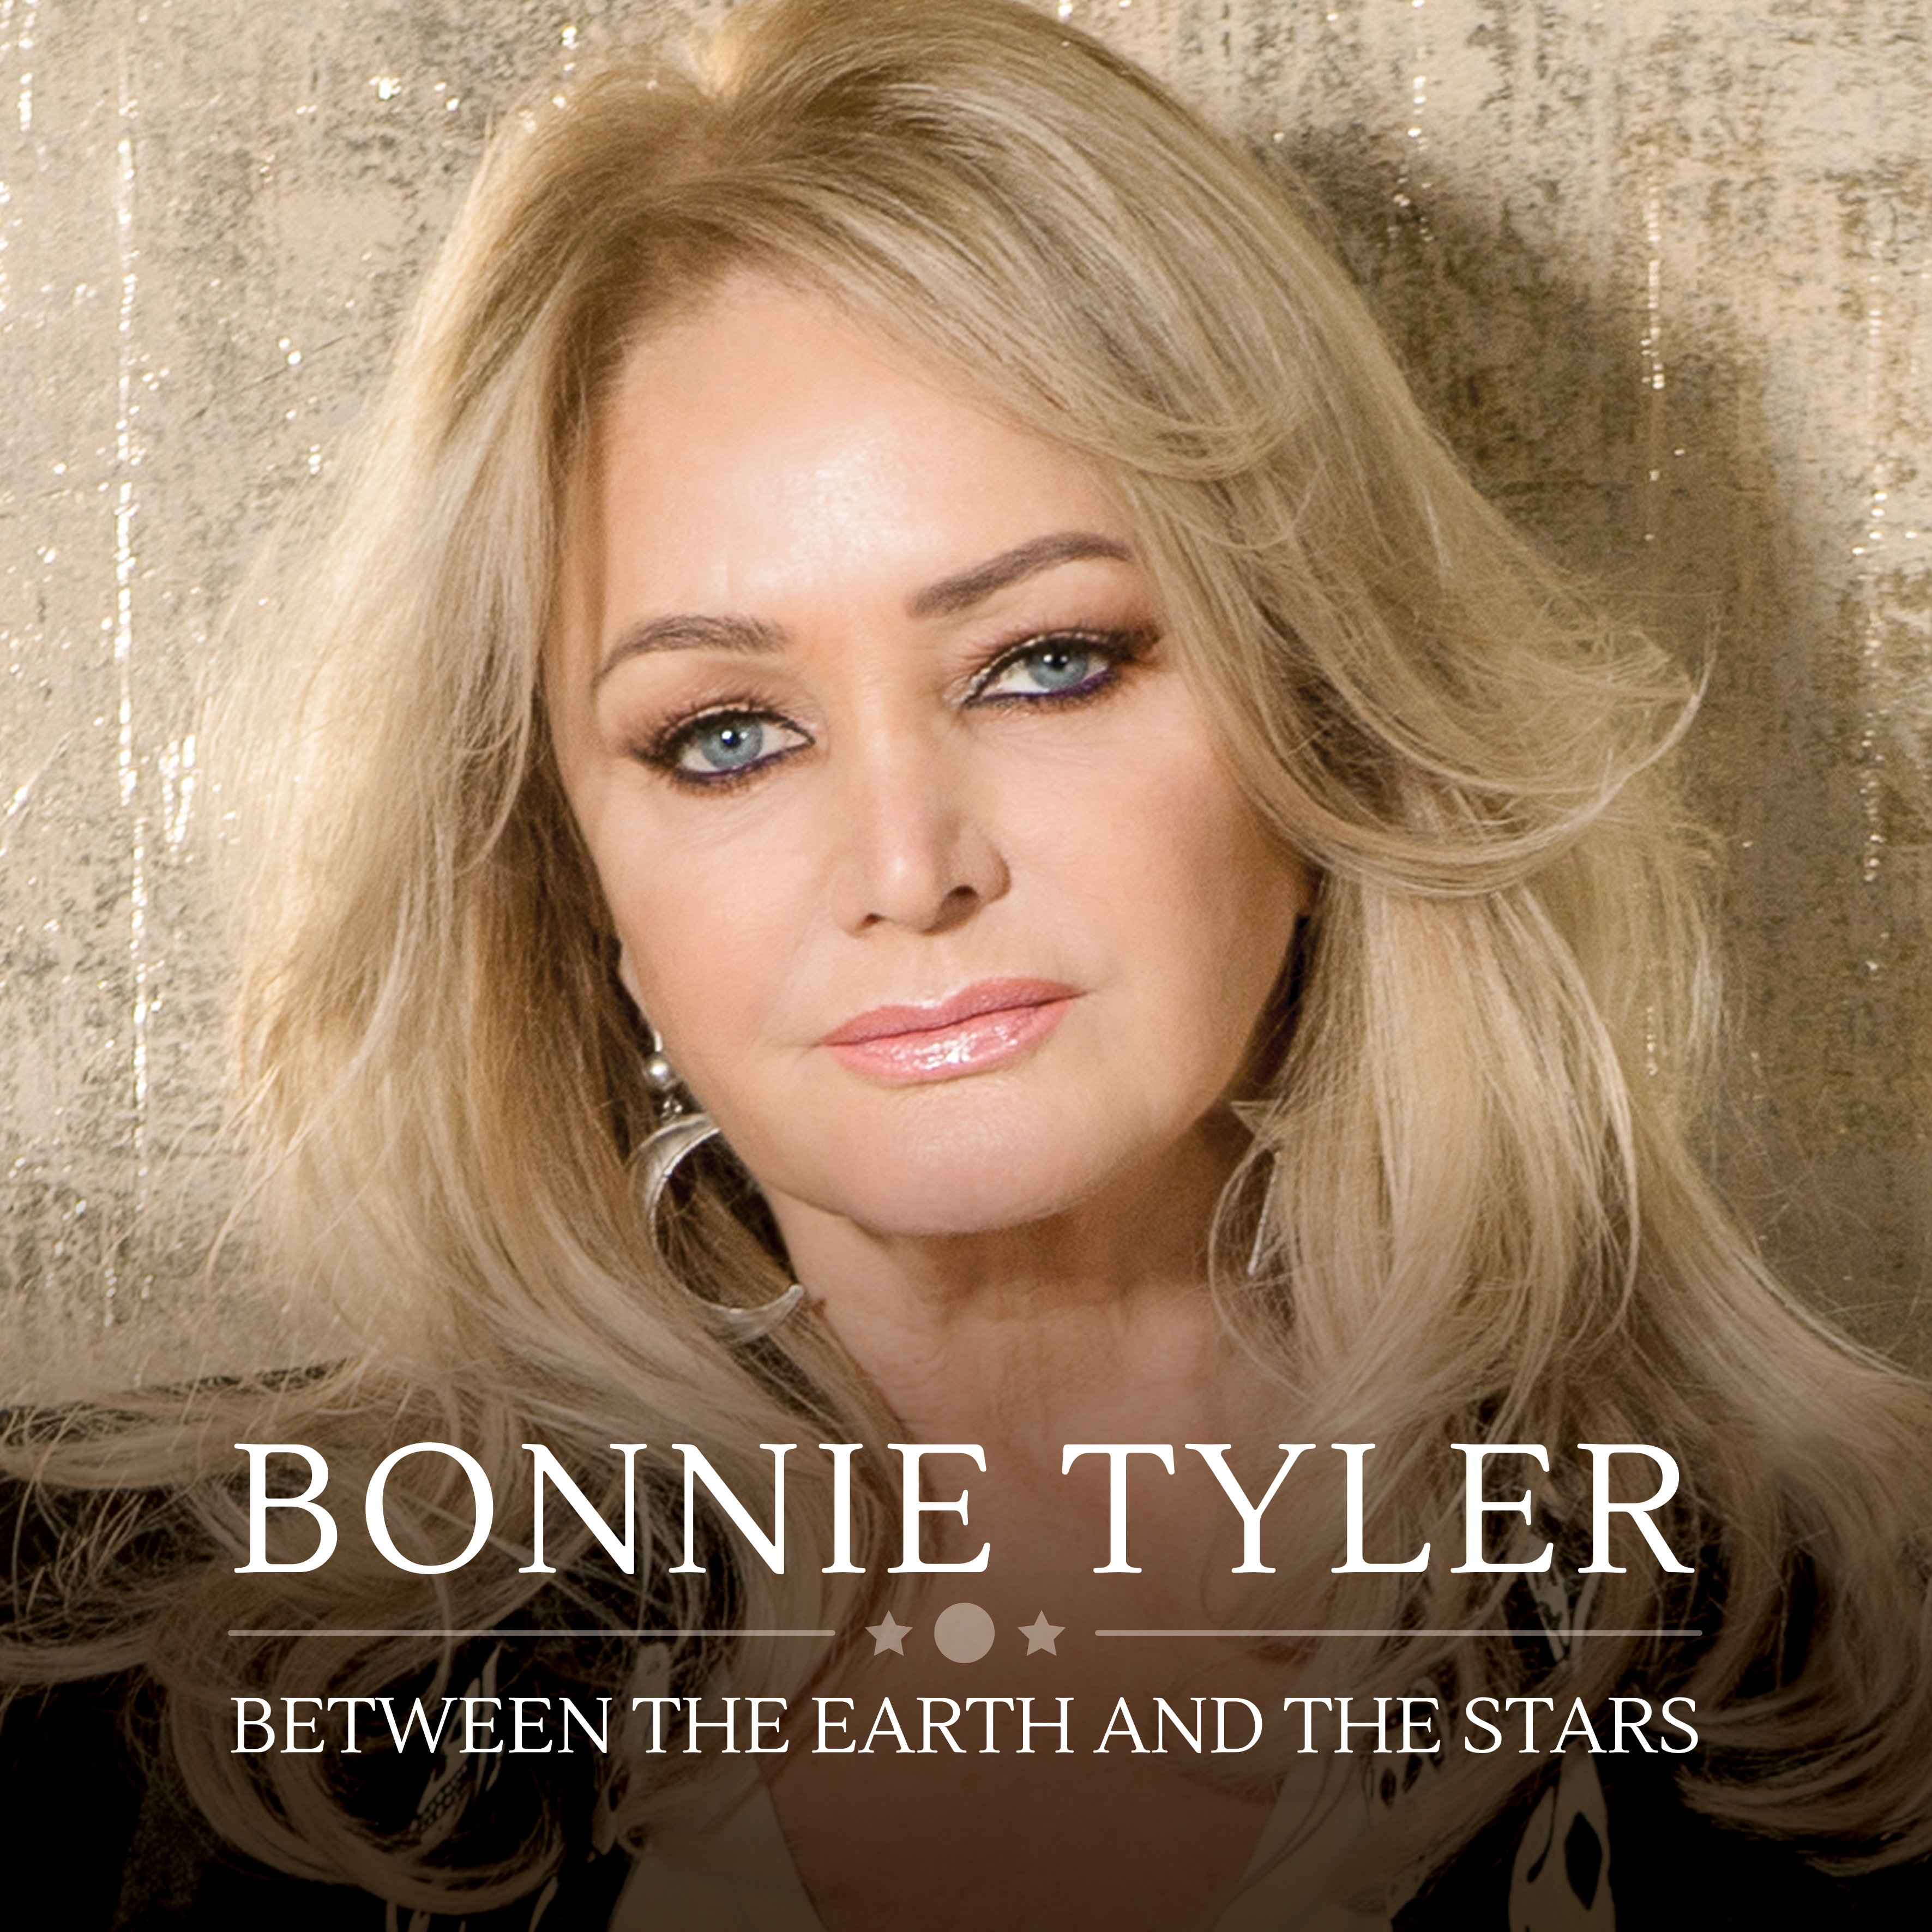 Bonnie Tyler - Between The Earth And The Stars - Album Cover